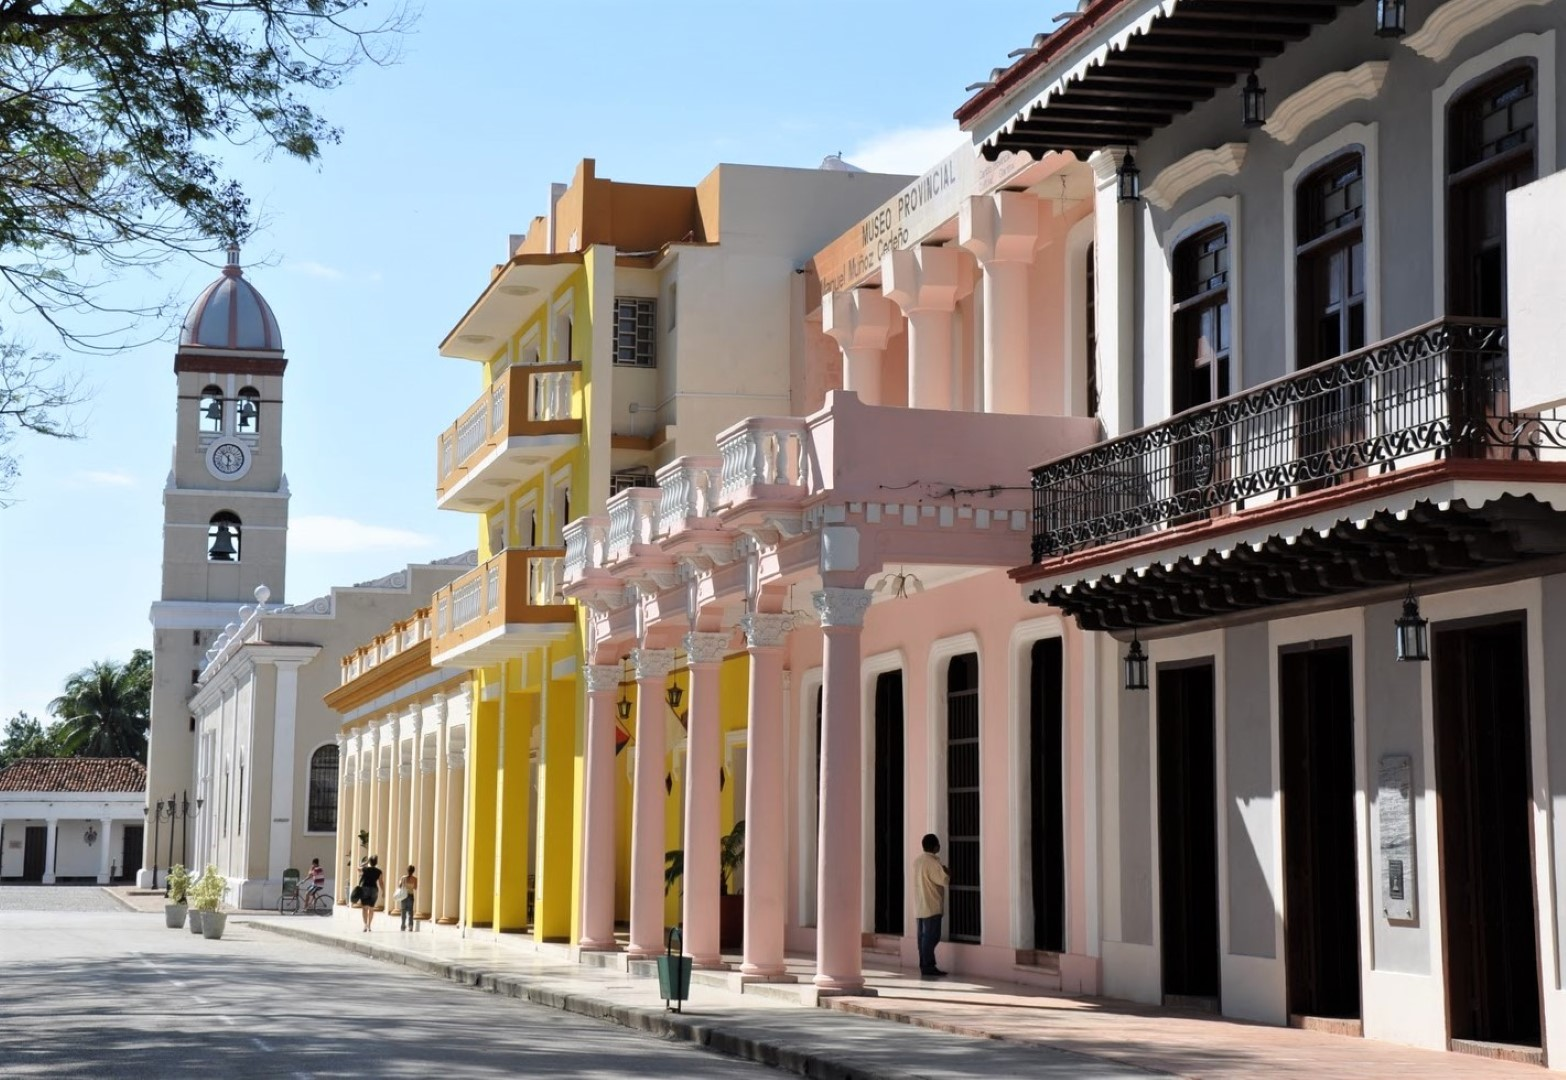 The main street in Bayamo Cuba